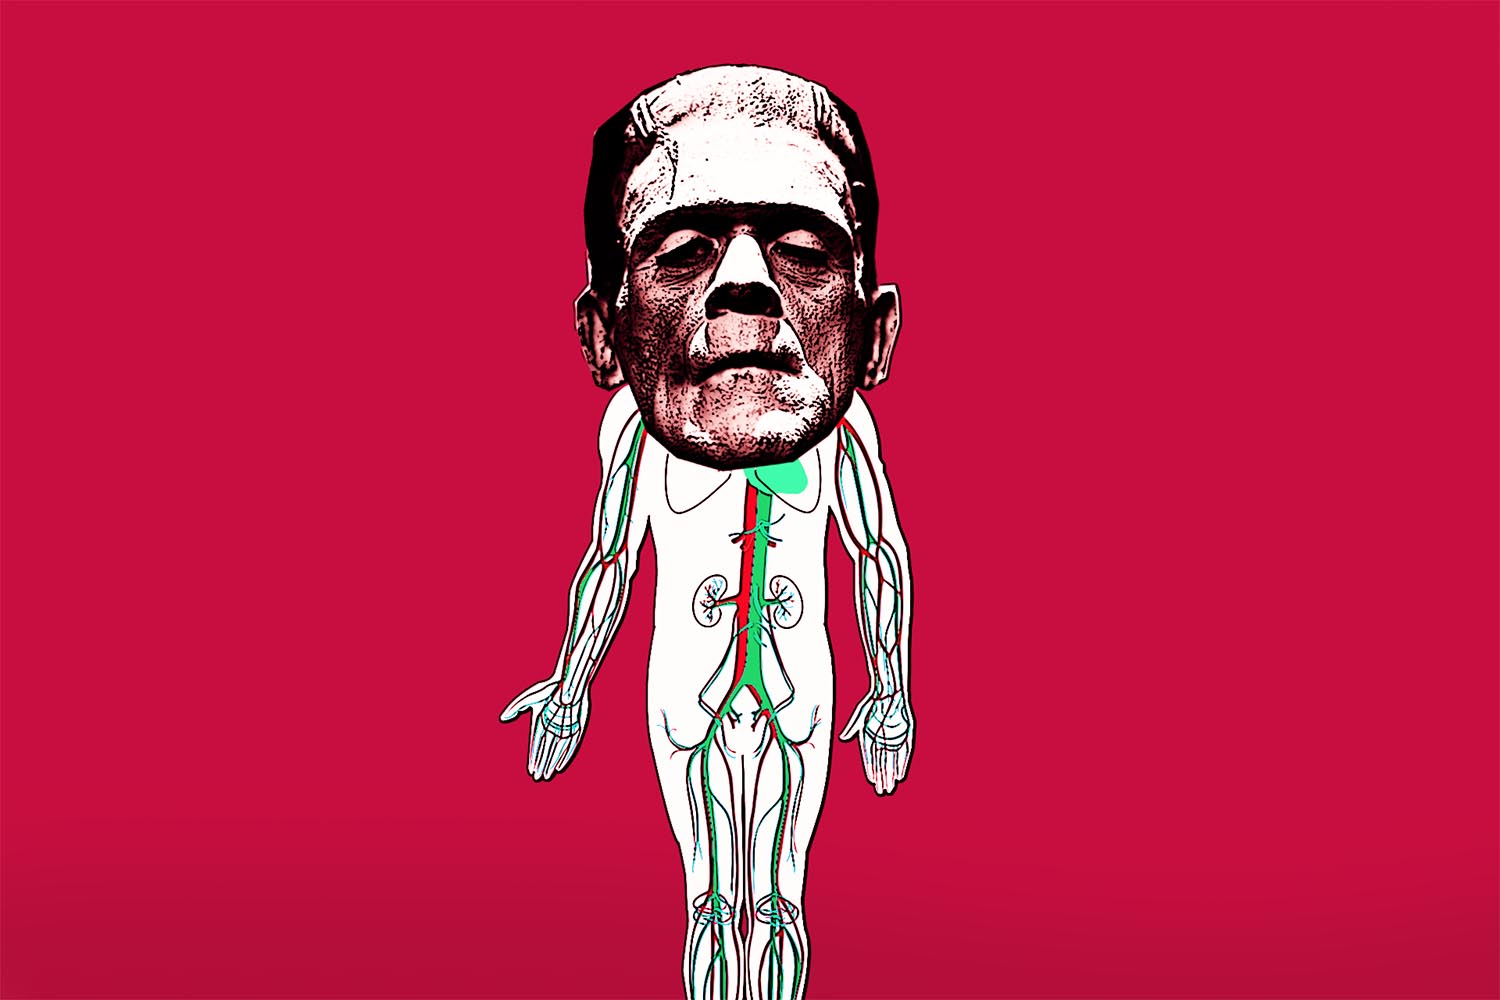 Frankenstein Scientist Attached a Head Transplant to a Dead Body